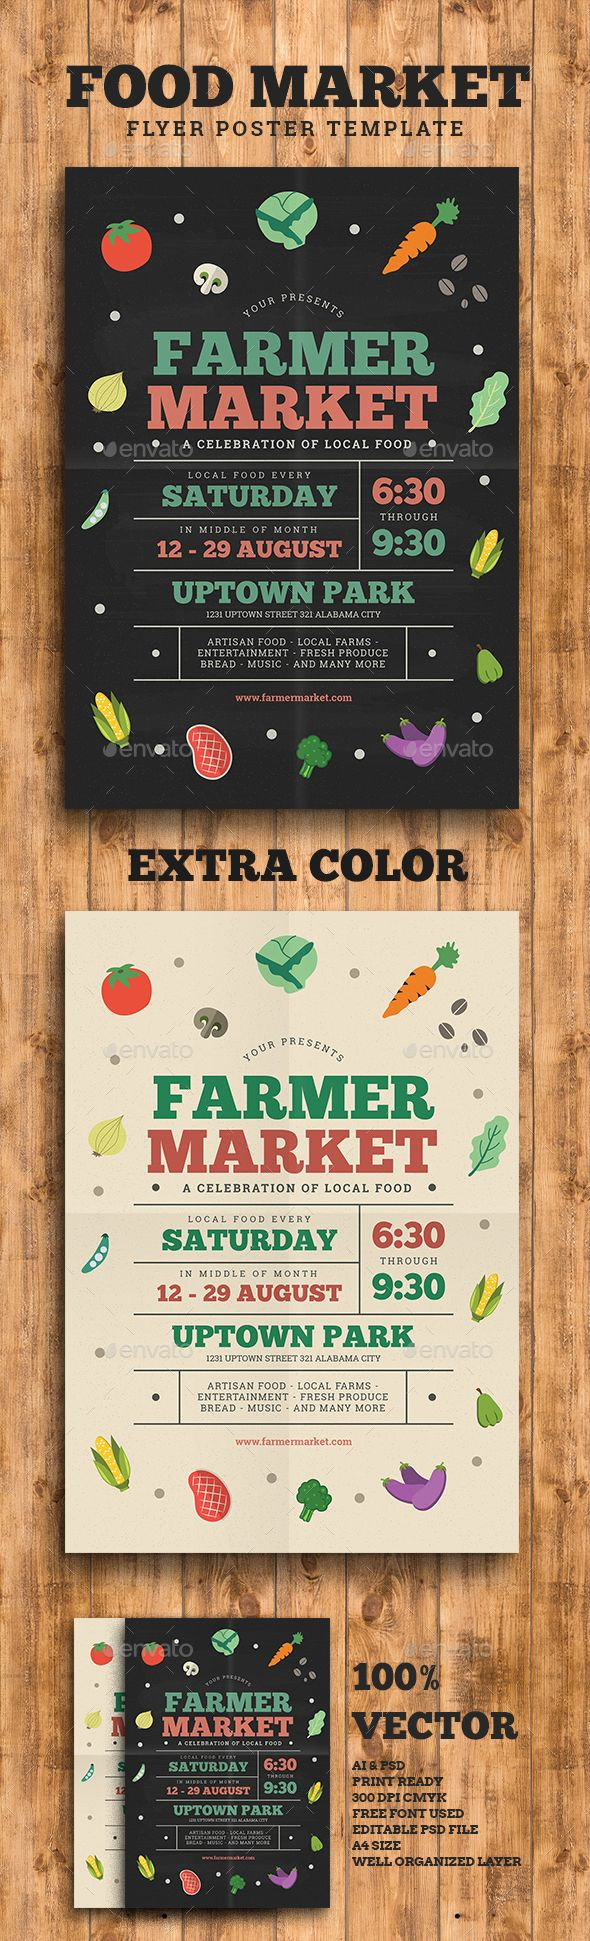 Farmer/Food Market Flyer Template PSD, AI Illustrator. Download here: http://graphicriver.net/item/farmerfood-market-flyer/16118198?ref=ksioks